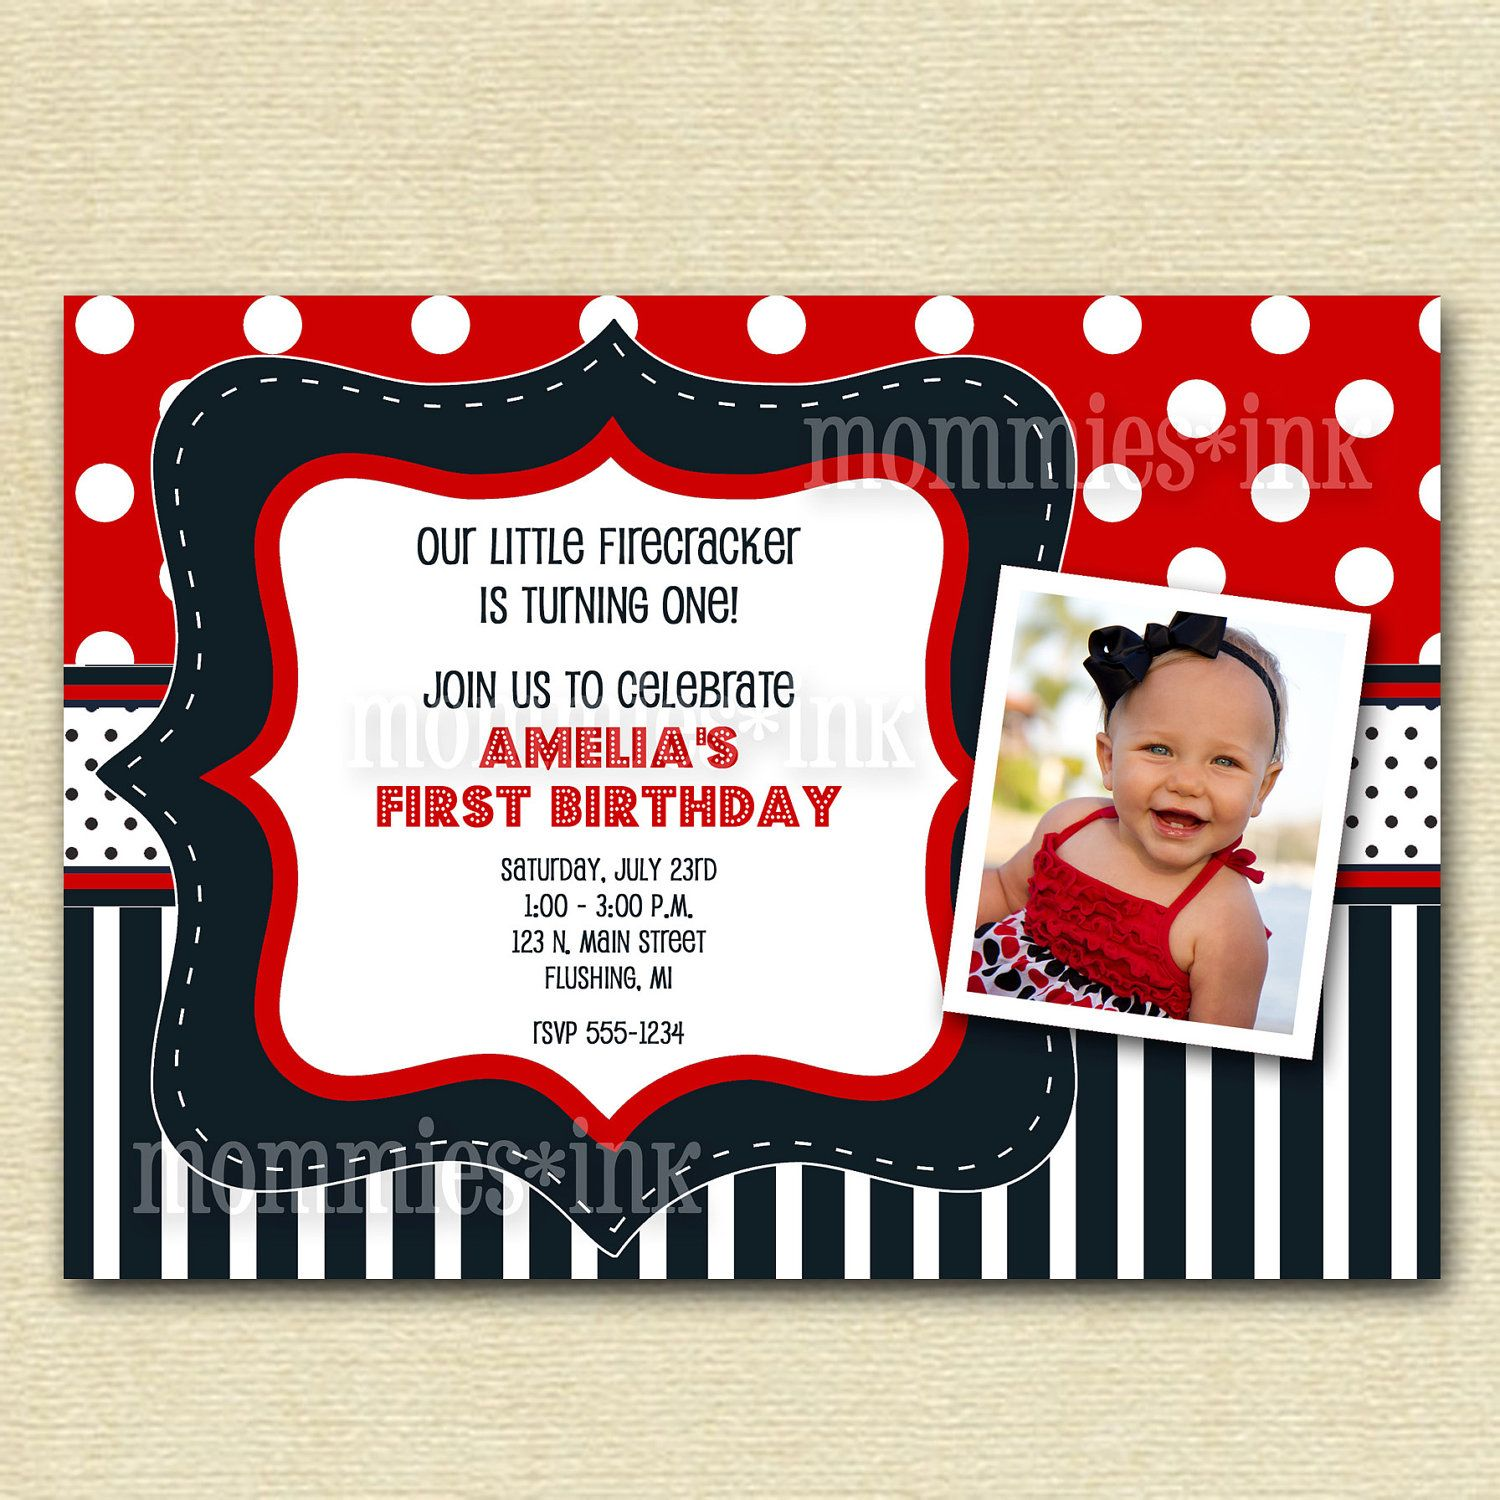 Red White and Blue Baby Shower or Birthday Invitation PRINTABLE – Baby Birthday Invite